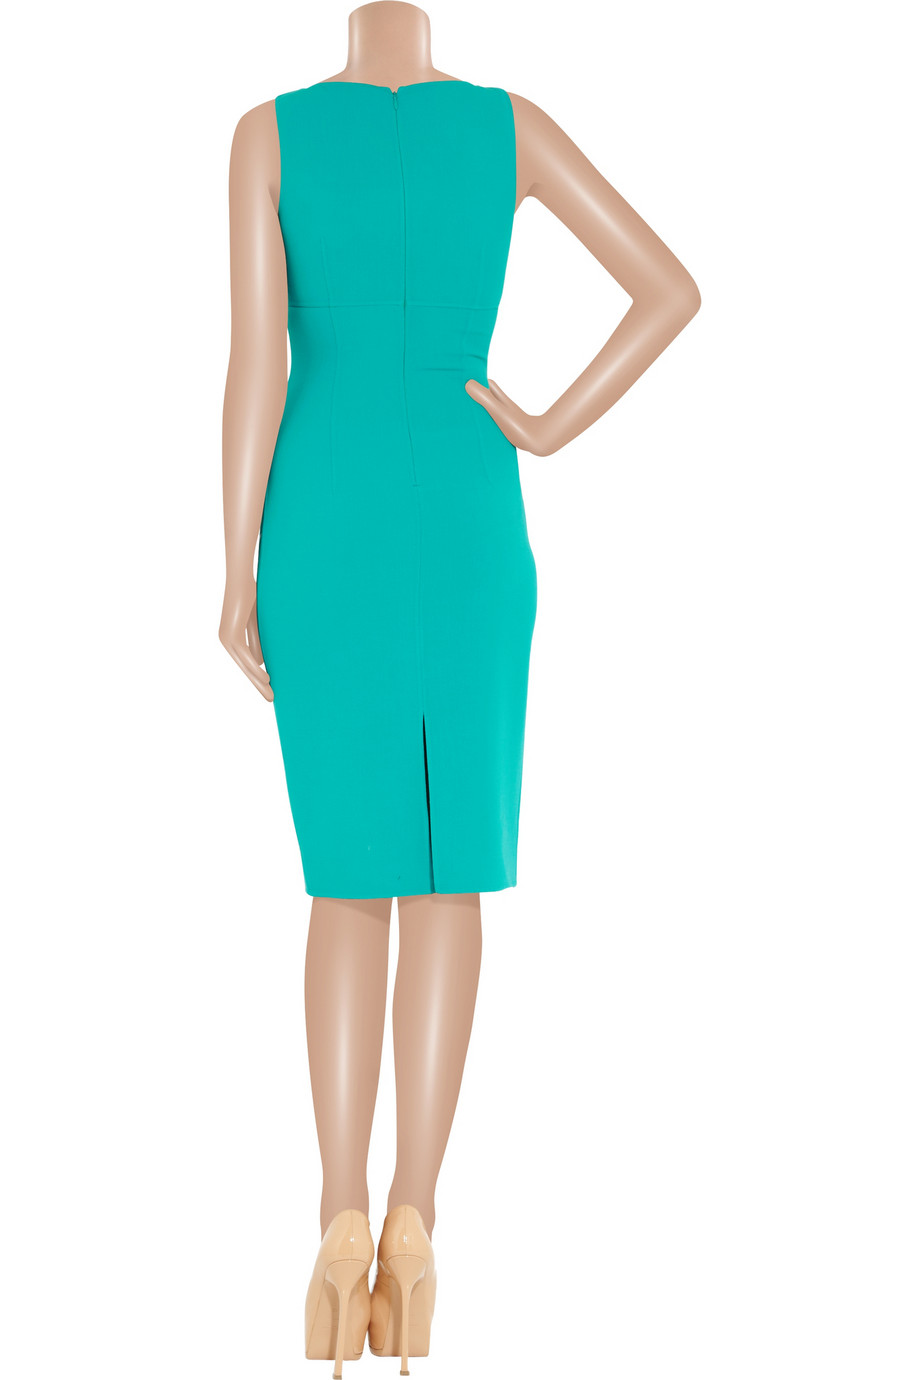 Lyst - Michael Kors Stretch Woolcrepe Dress in Blue